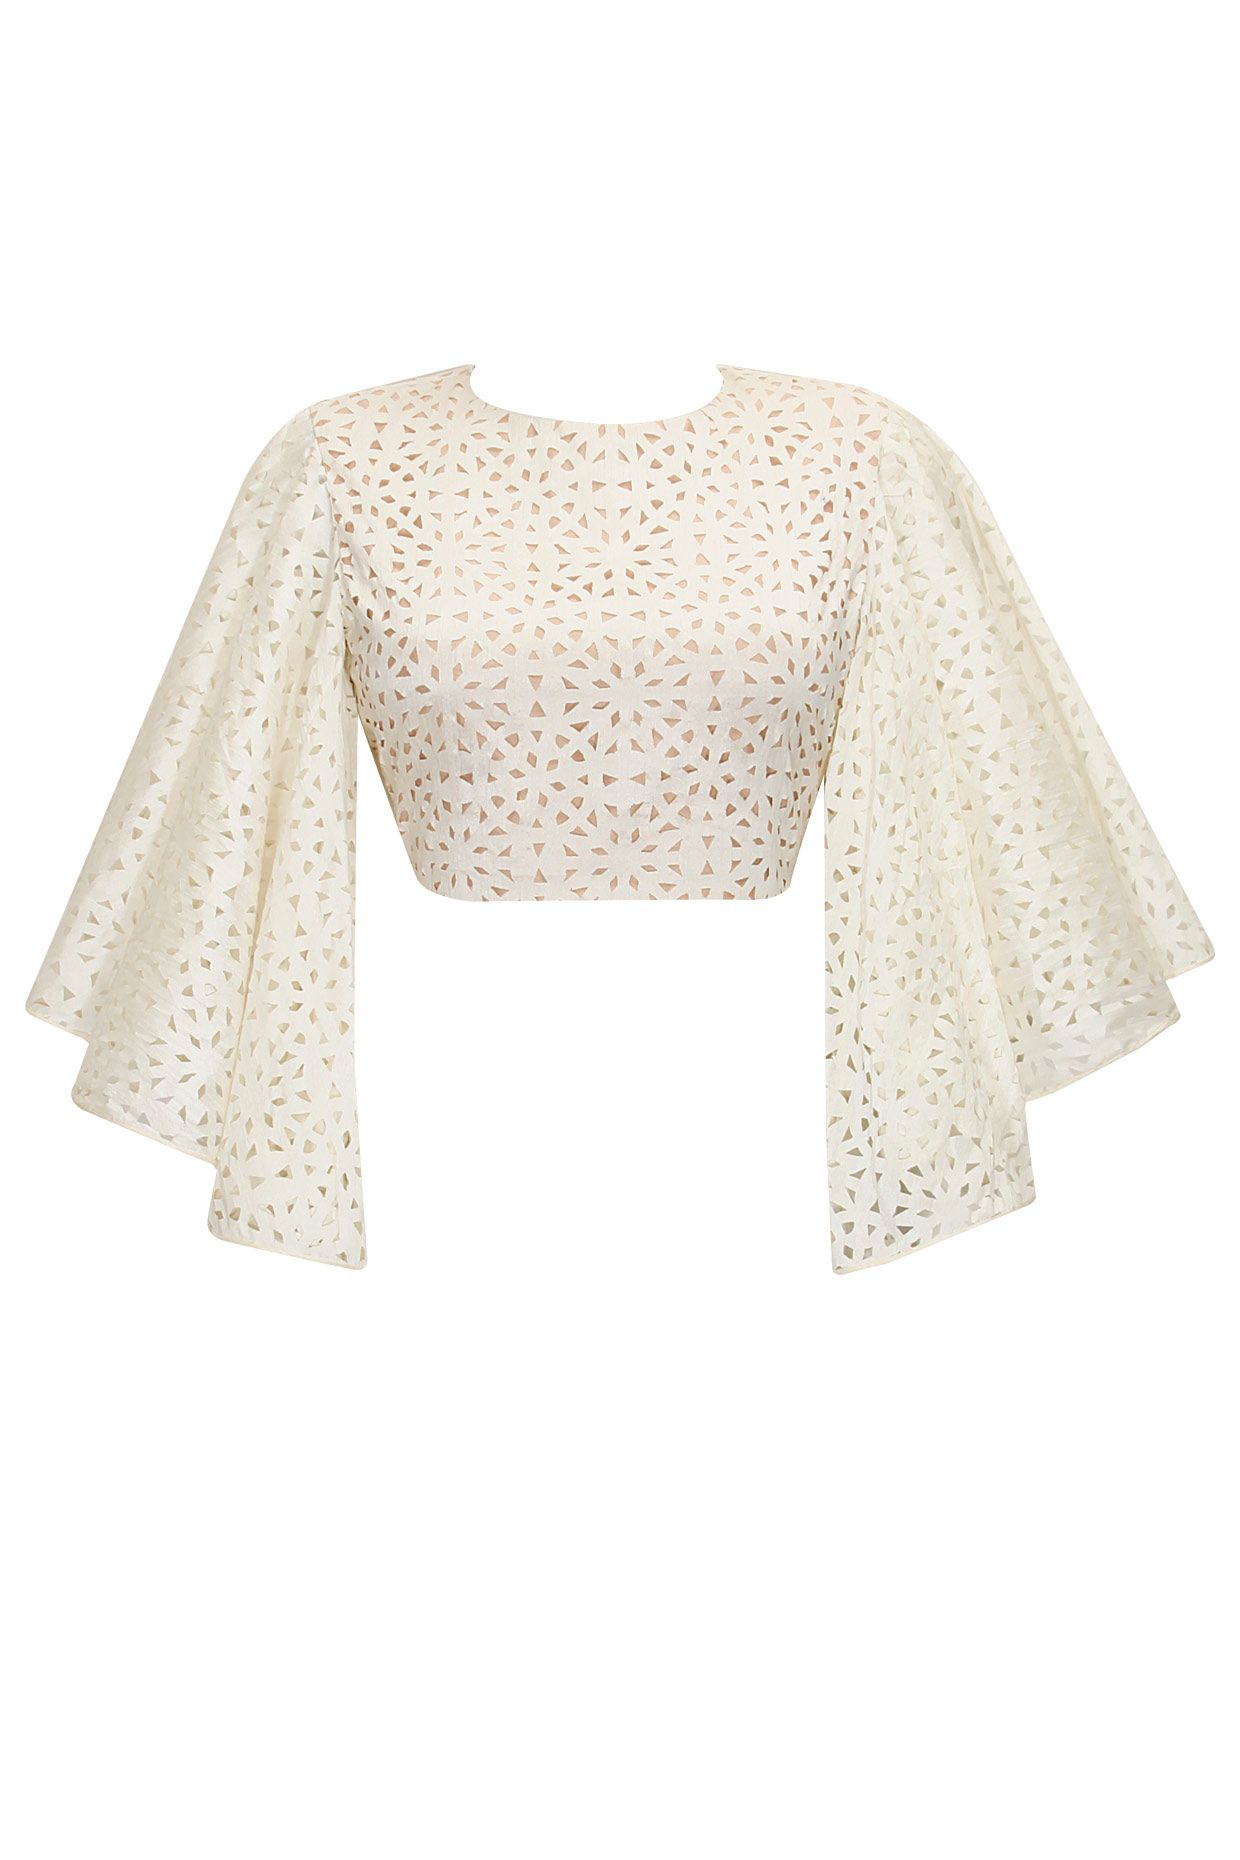 Off white cutwork bell sleeves crop top by SVA. Shop now: http://www.perniaspopupshop.com/designers/sva #sva #top #perniaspopupshop #shopnow